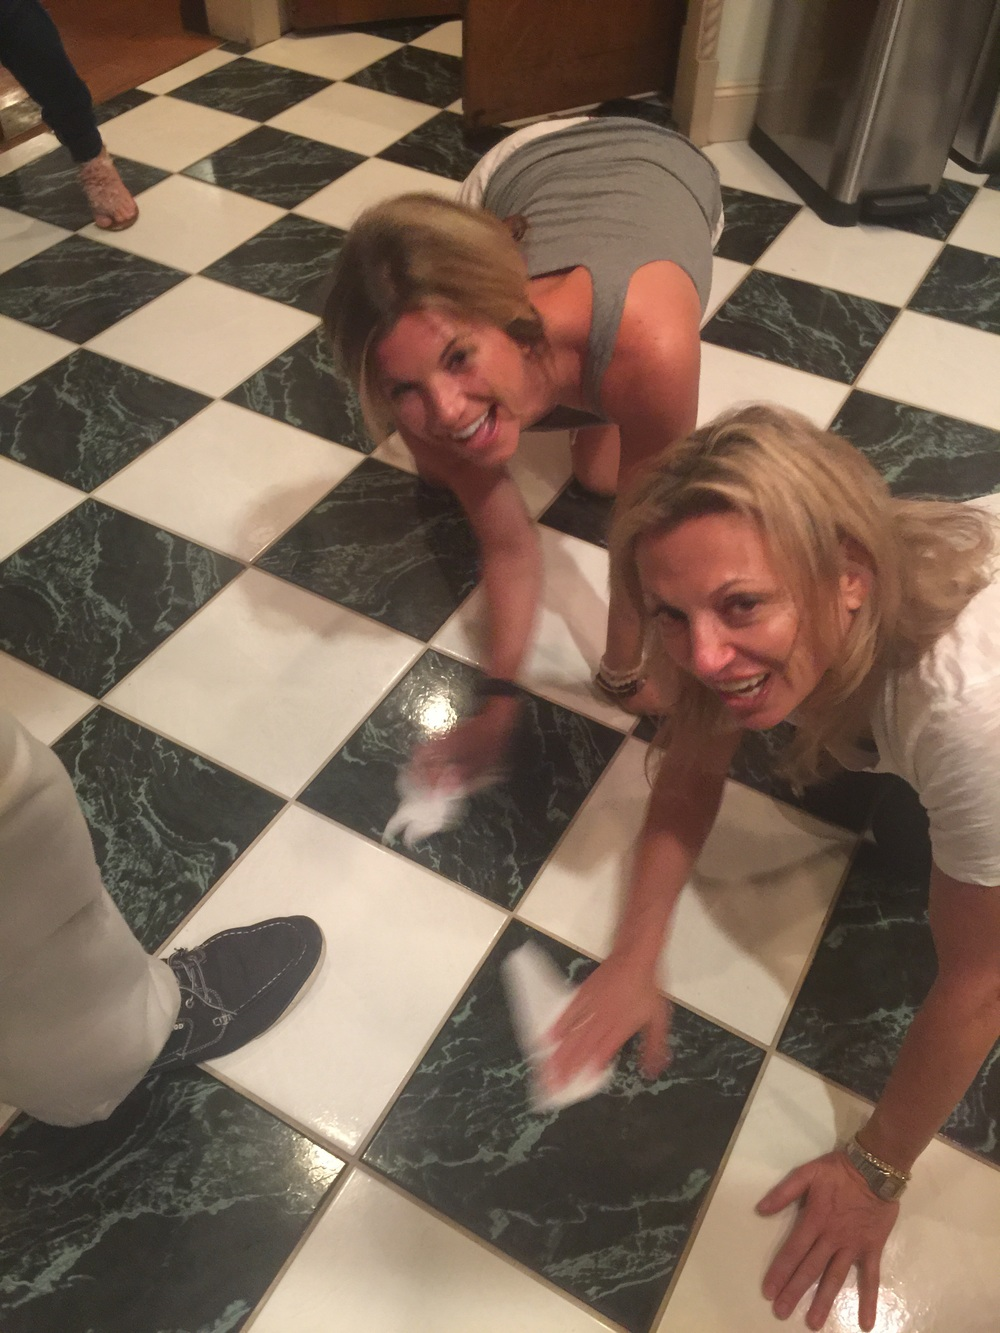 Earning our keep...washing floor🙊 Dr. G and me cleaning up😘